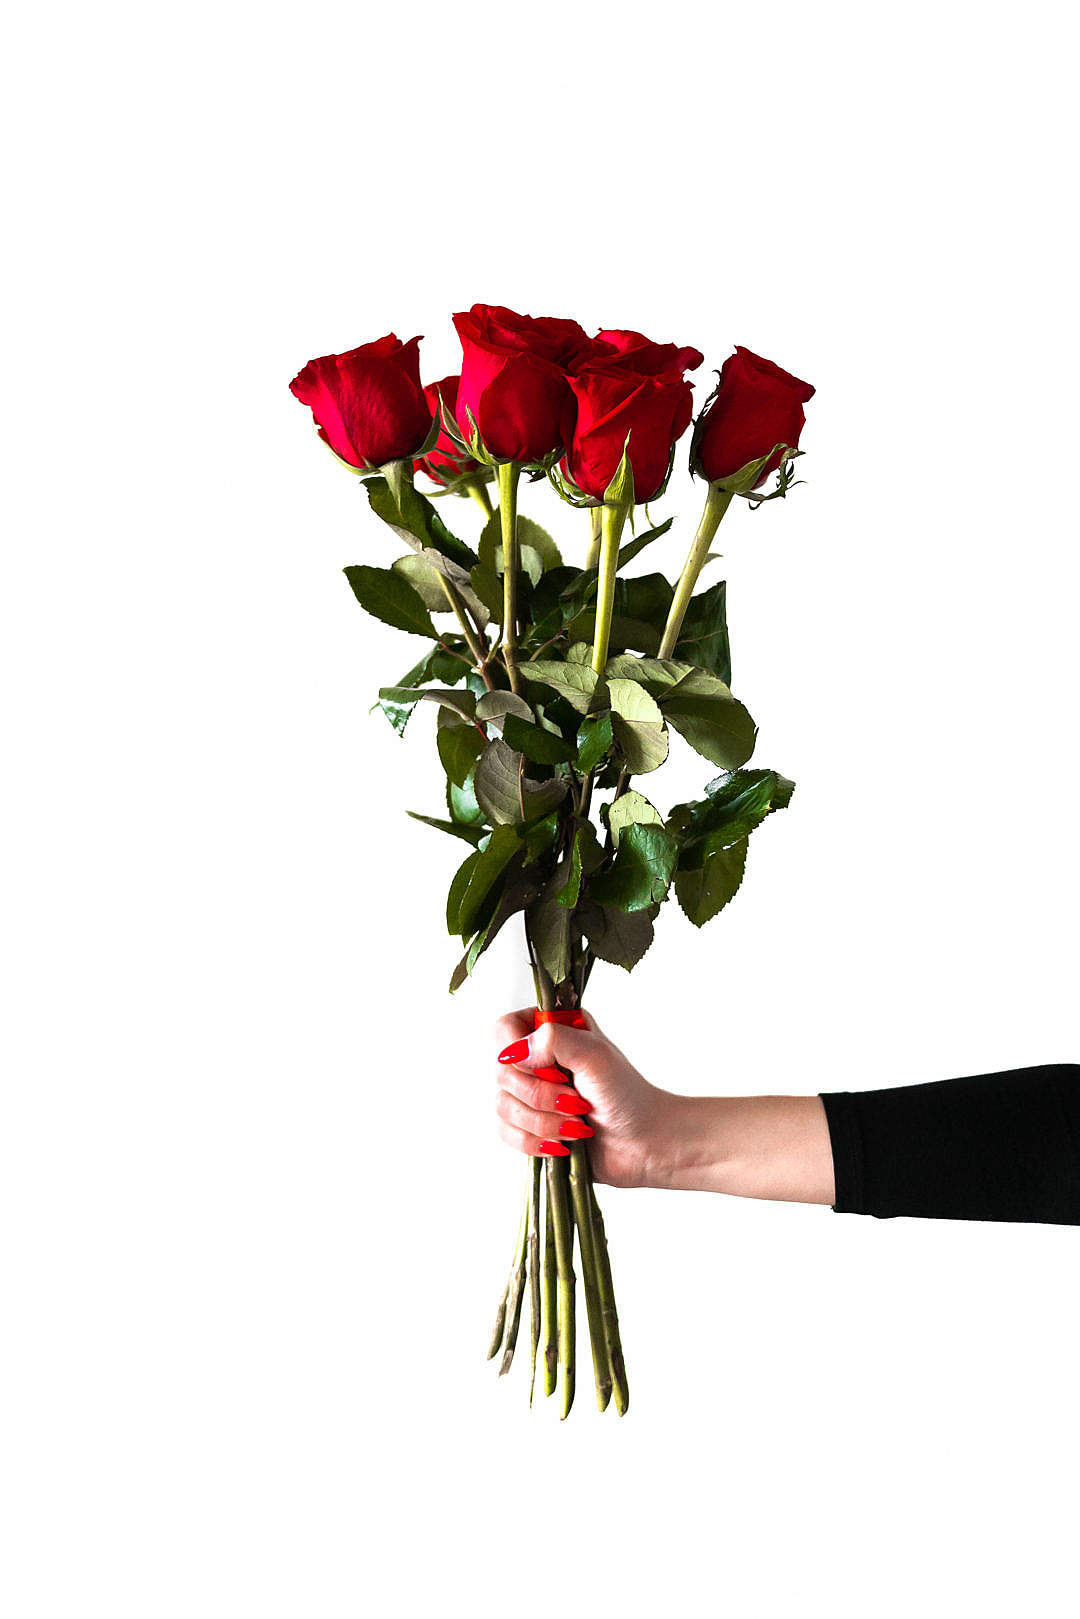 Download Red Roses in Woman's Hand FREE Stock Photo